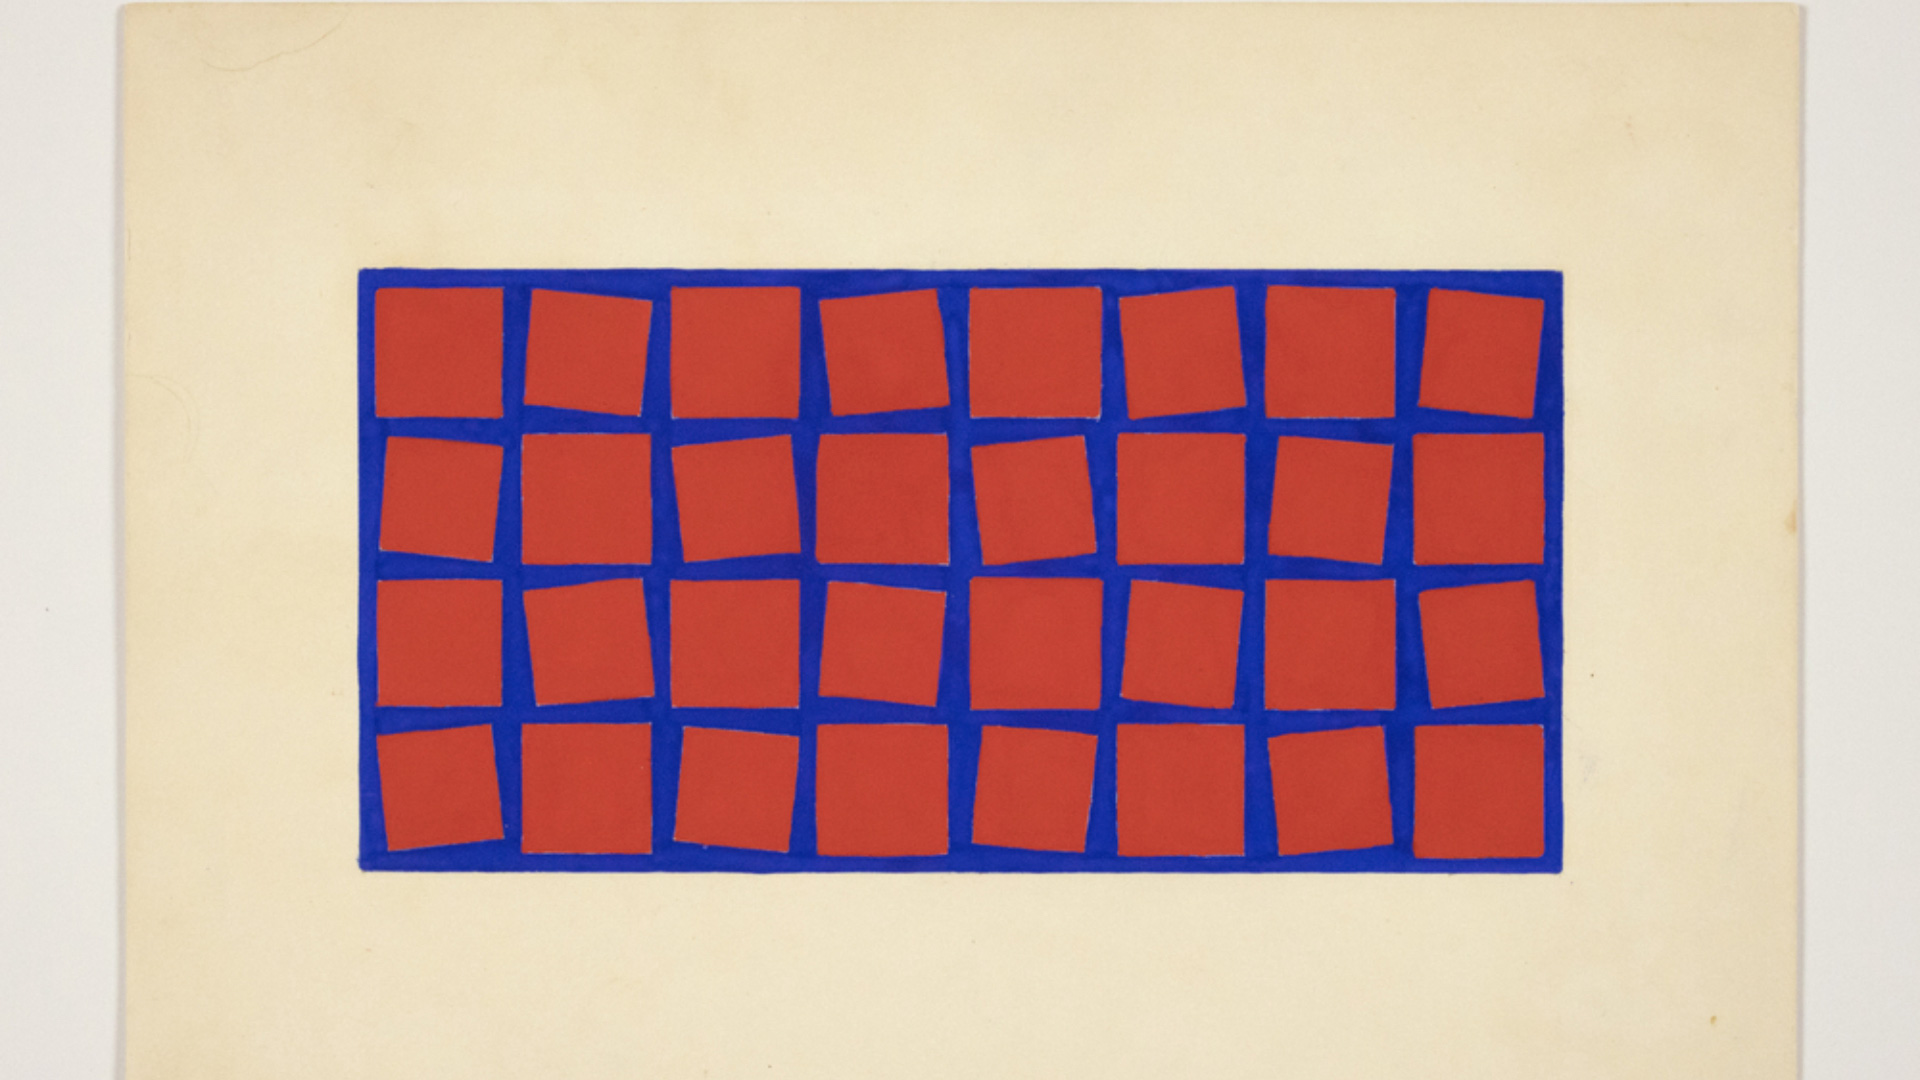 Hélio Oiticica's earlier works. Untitled, 1958 in gouache on cardboard | Lisson Gallery | Hélio Oiticica | STIRworld